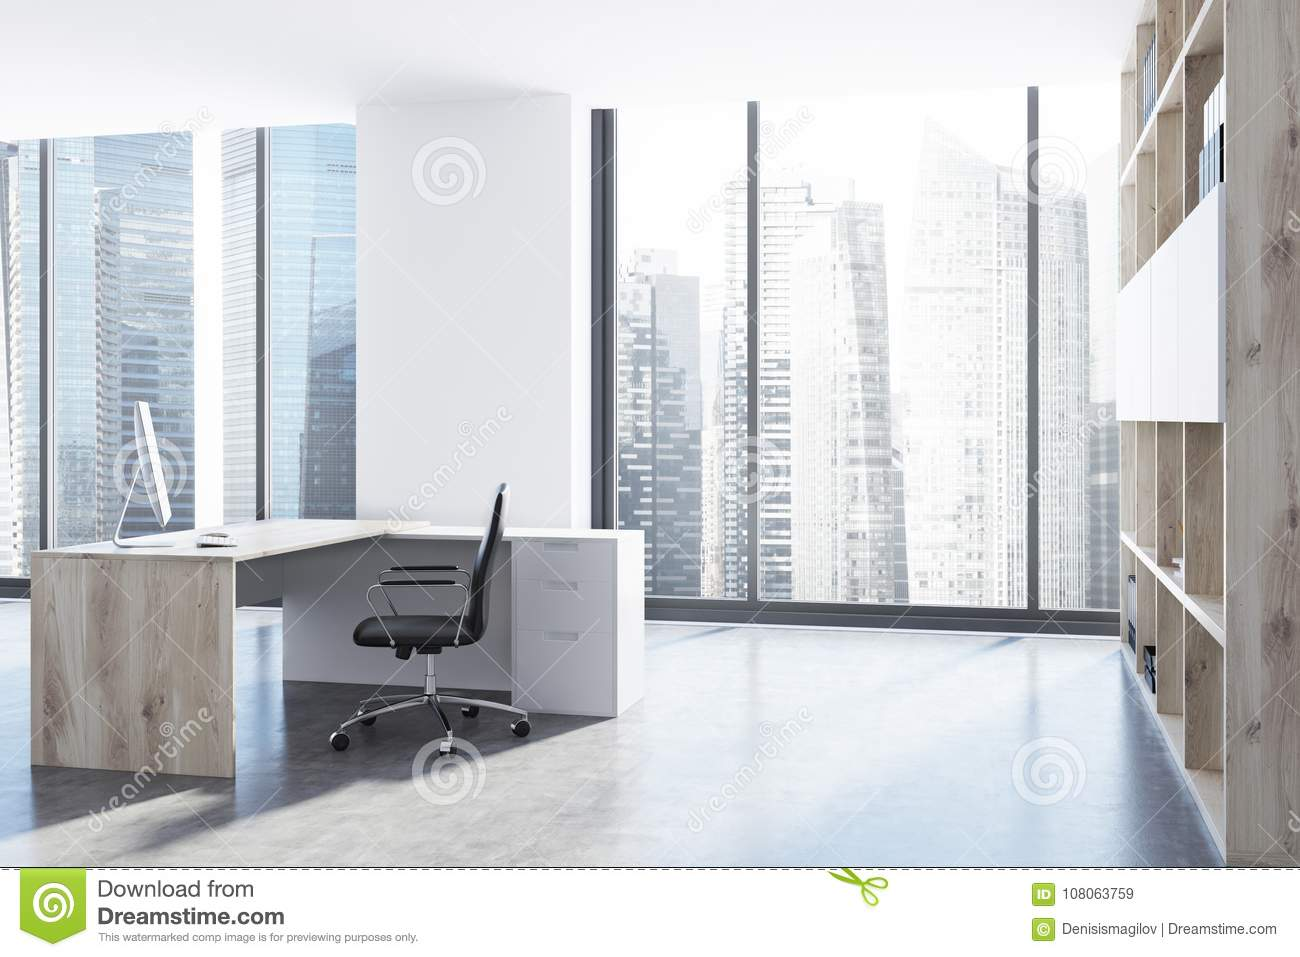 office side table. Royalty-Free Stock Photo Office Side Table